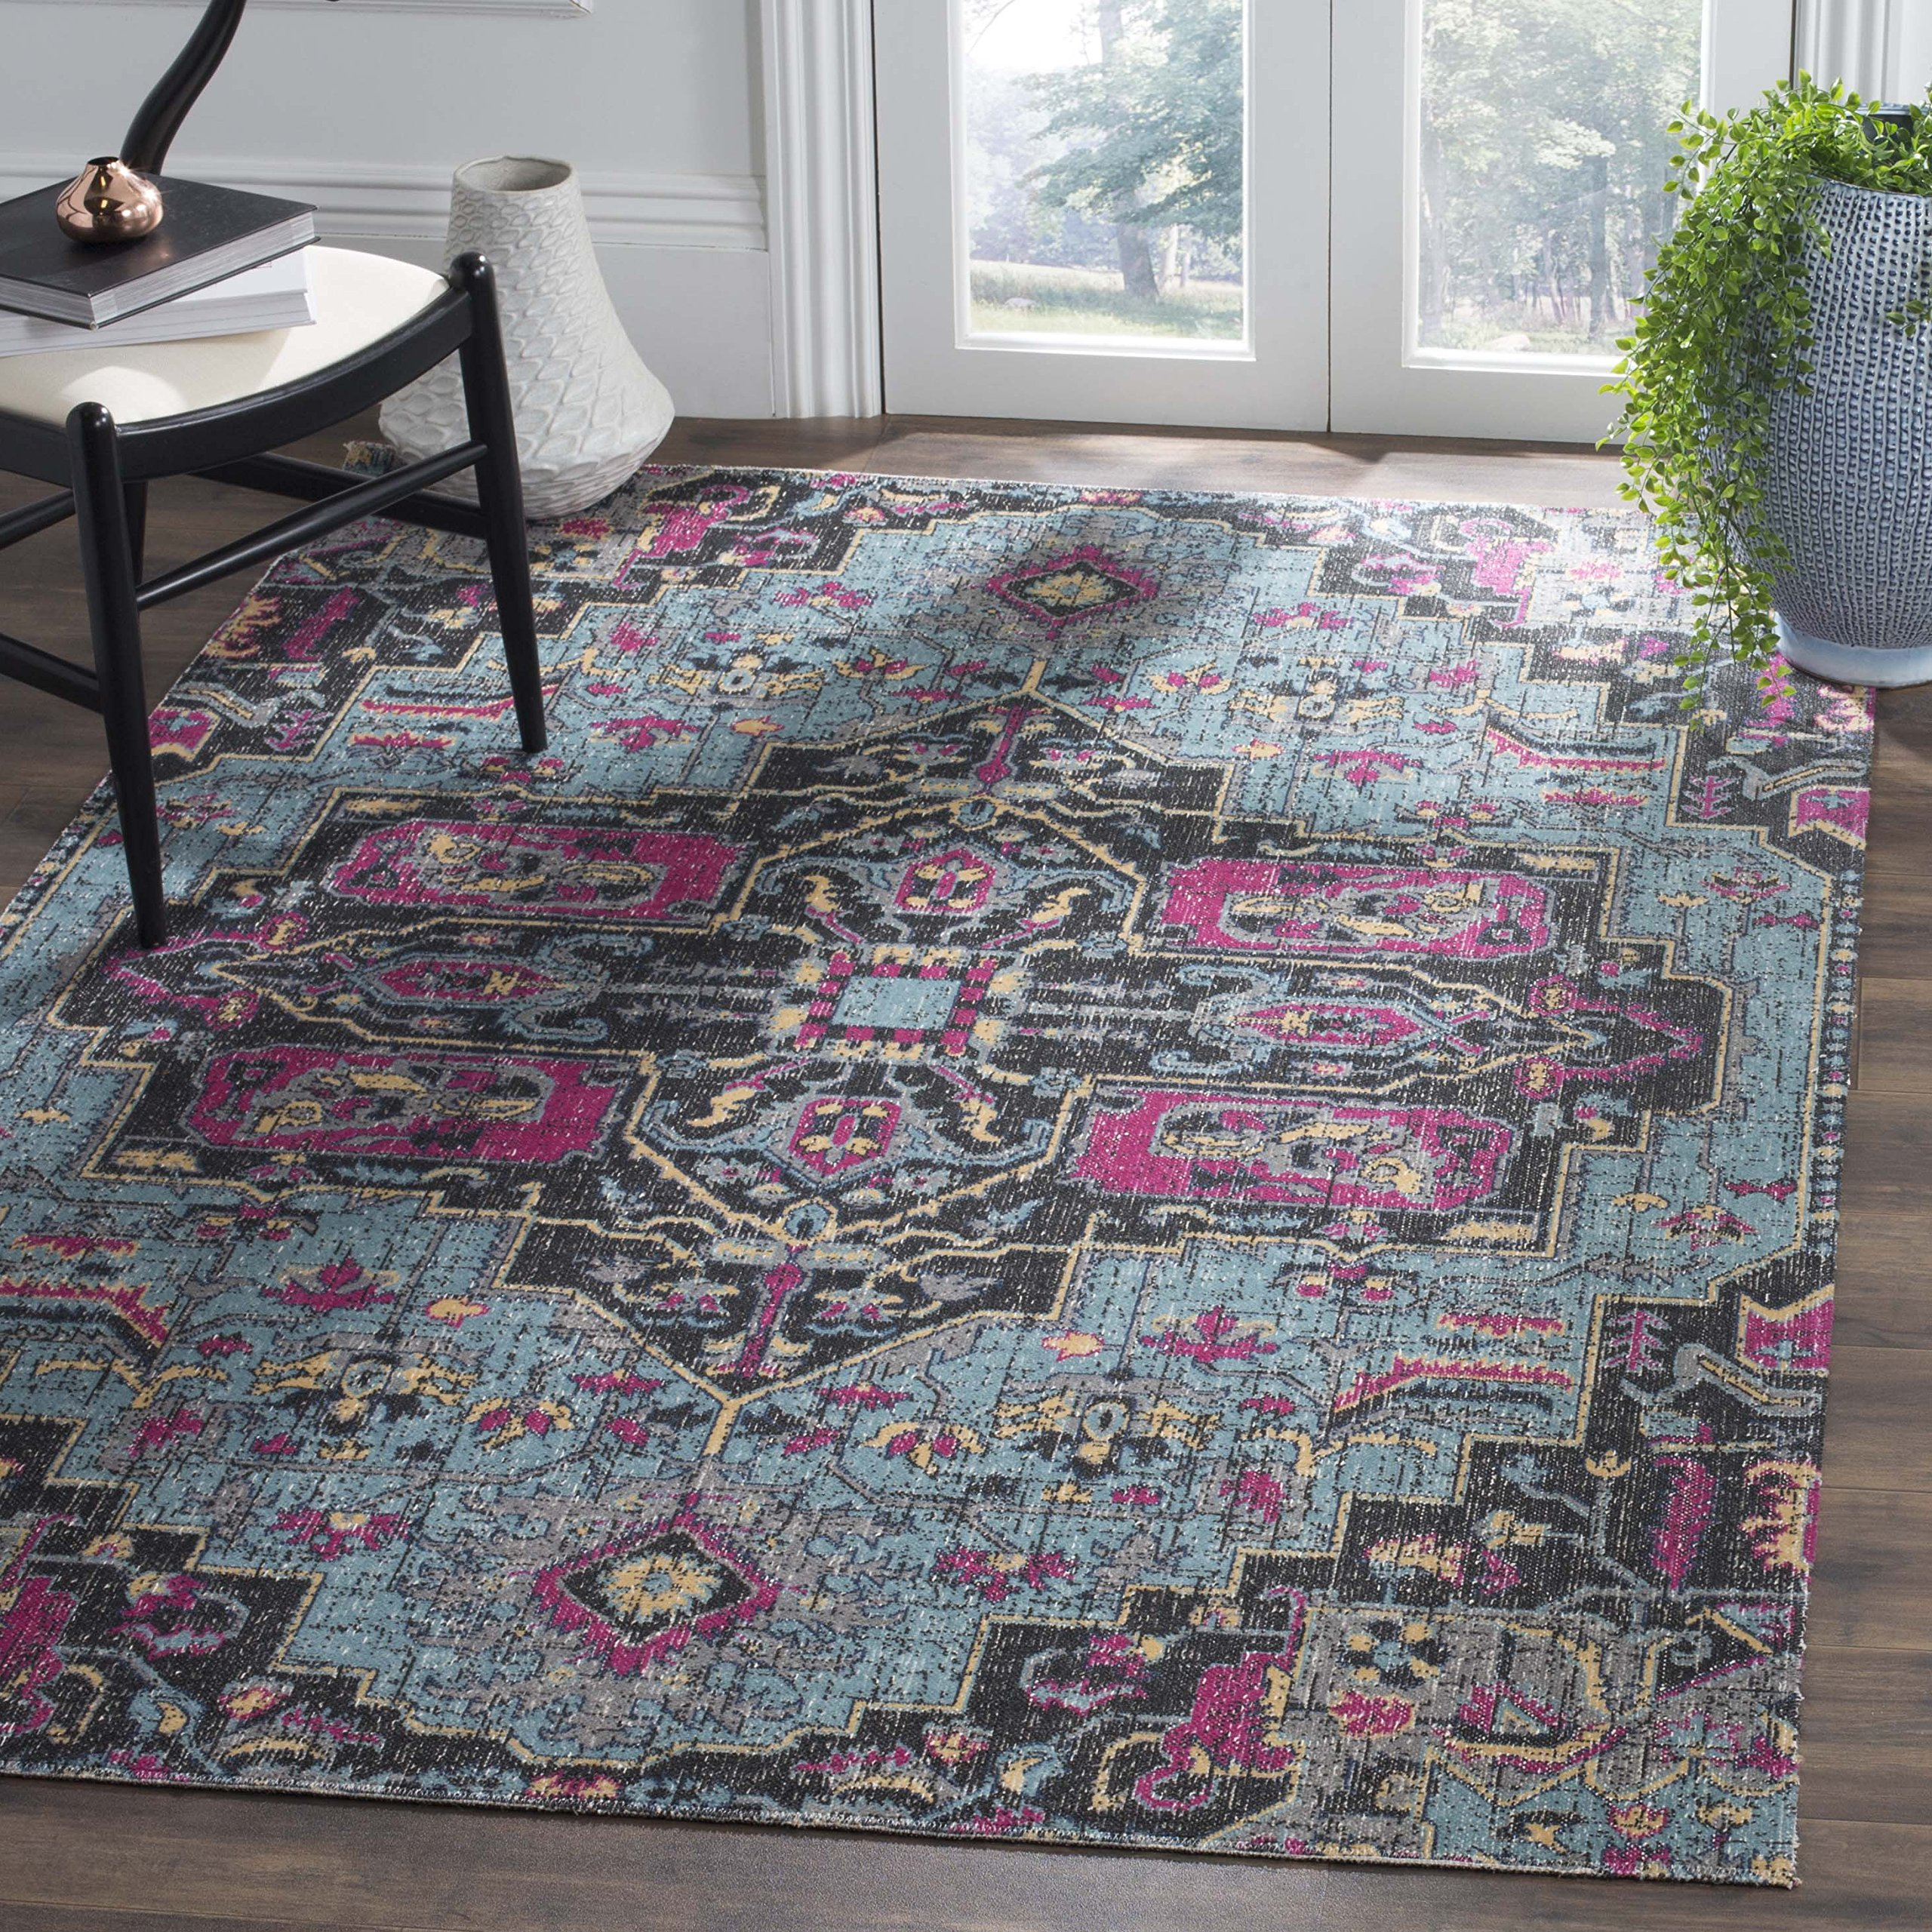 Safavieh Artisan Collection ATN511L Vintage Bohemian Light Blue and Black Medallion Area Rug (5'1 x 7'6) by Safavieh